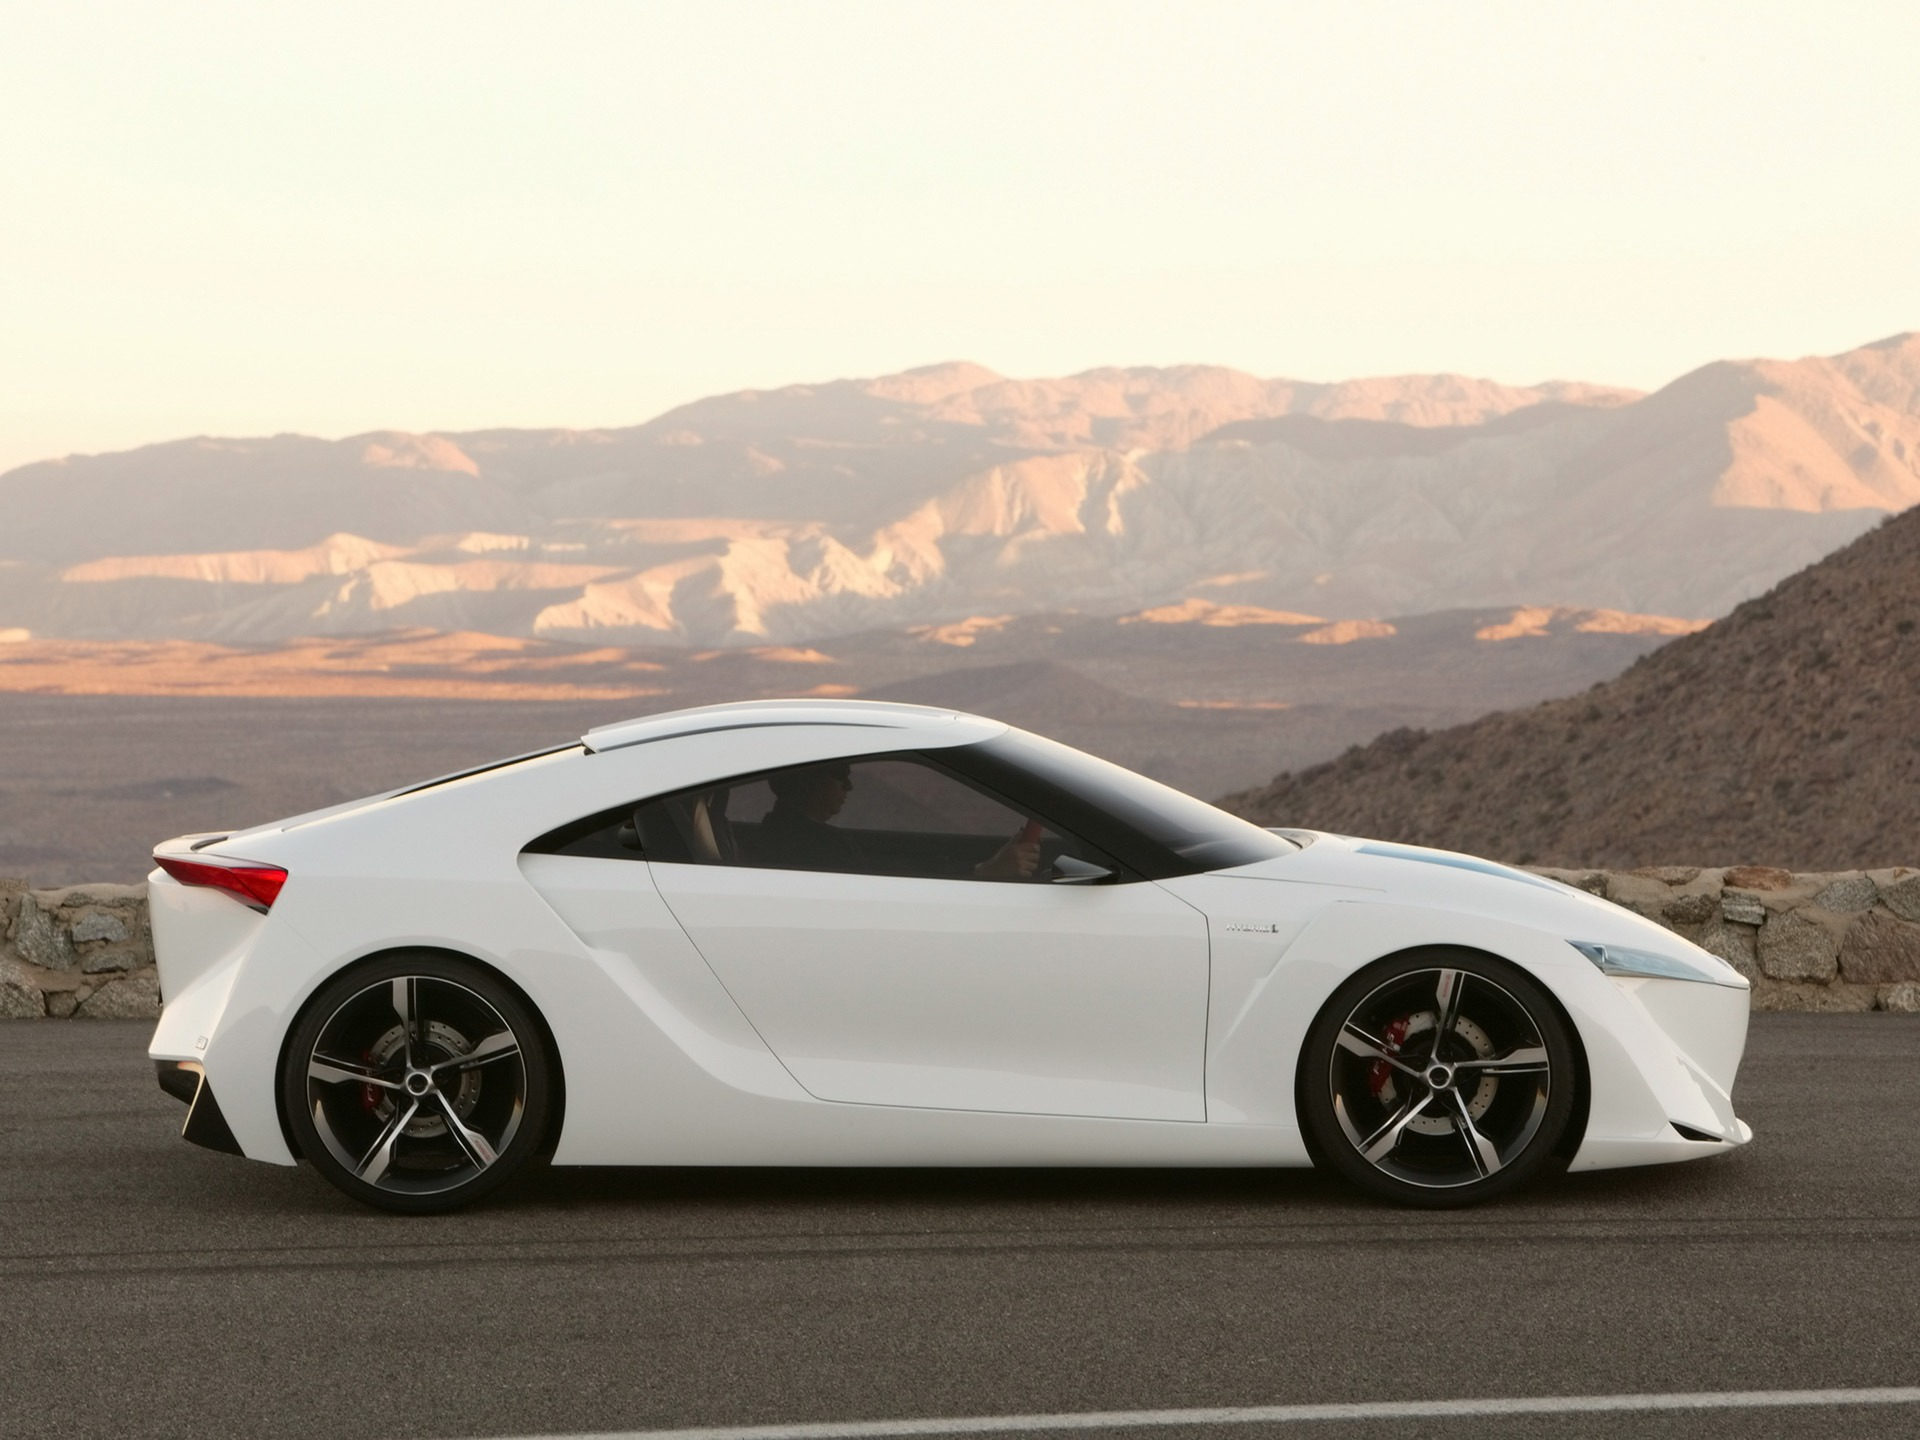 Toyota Ft Hs Concept Wallpaper Concept Cars Wallpapers In Jpg Format